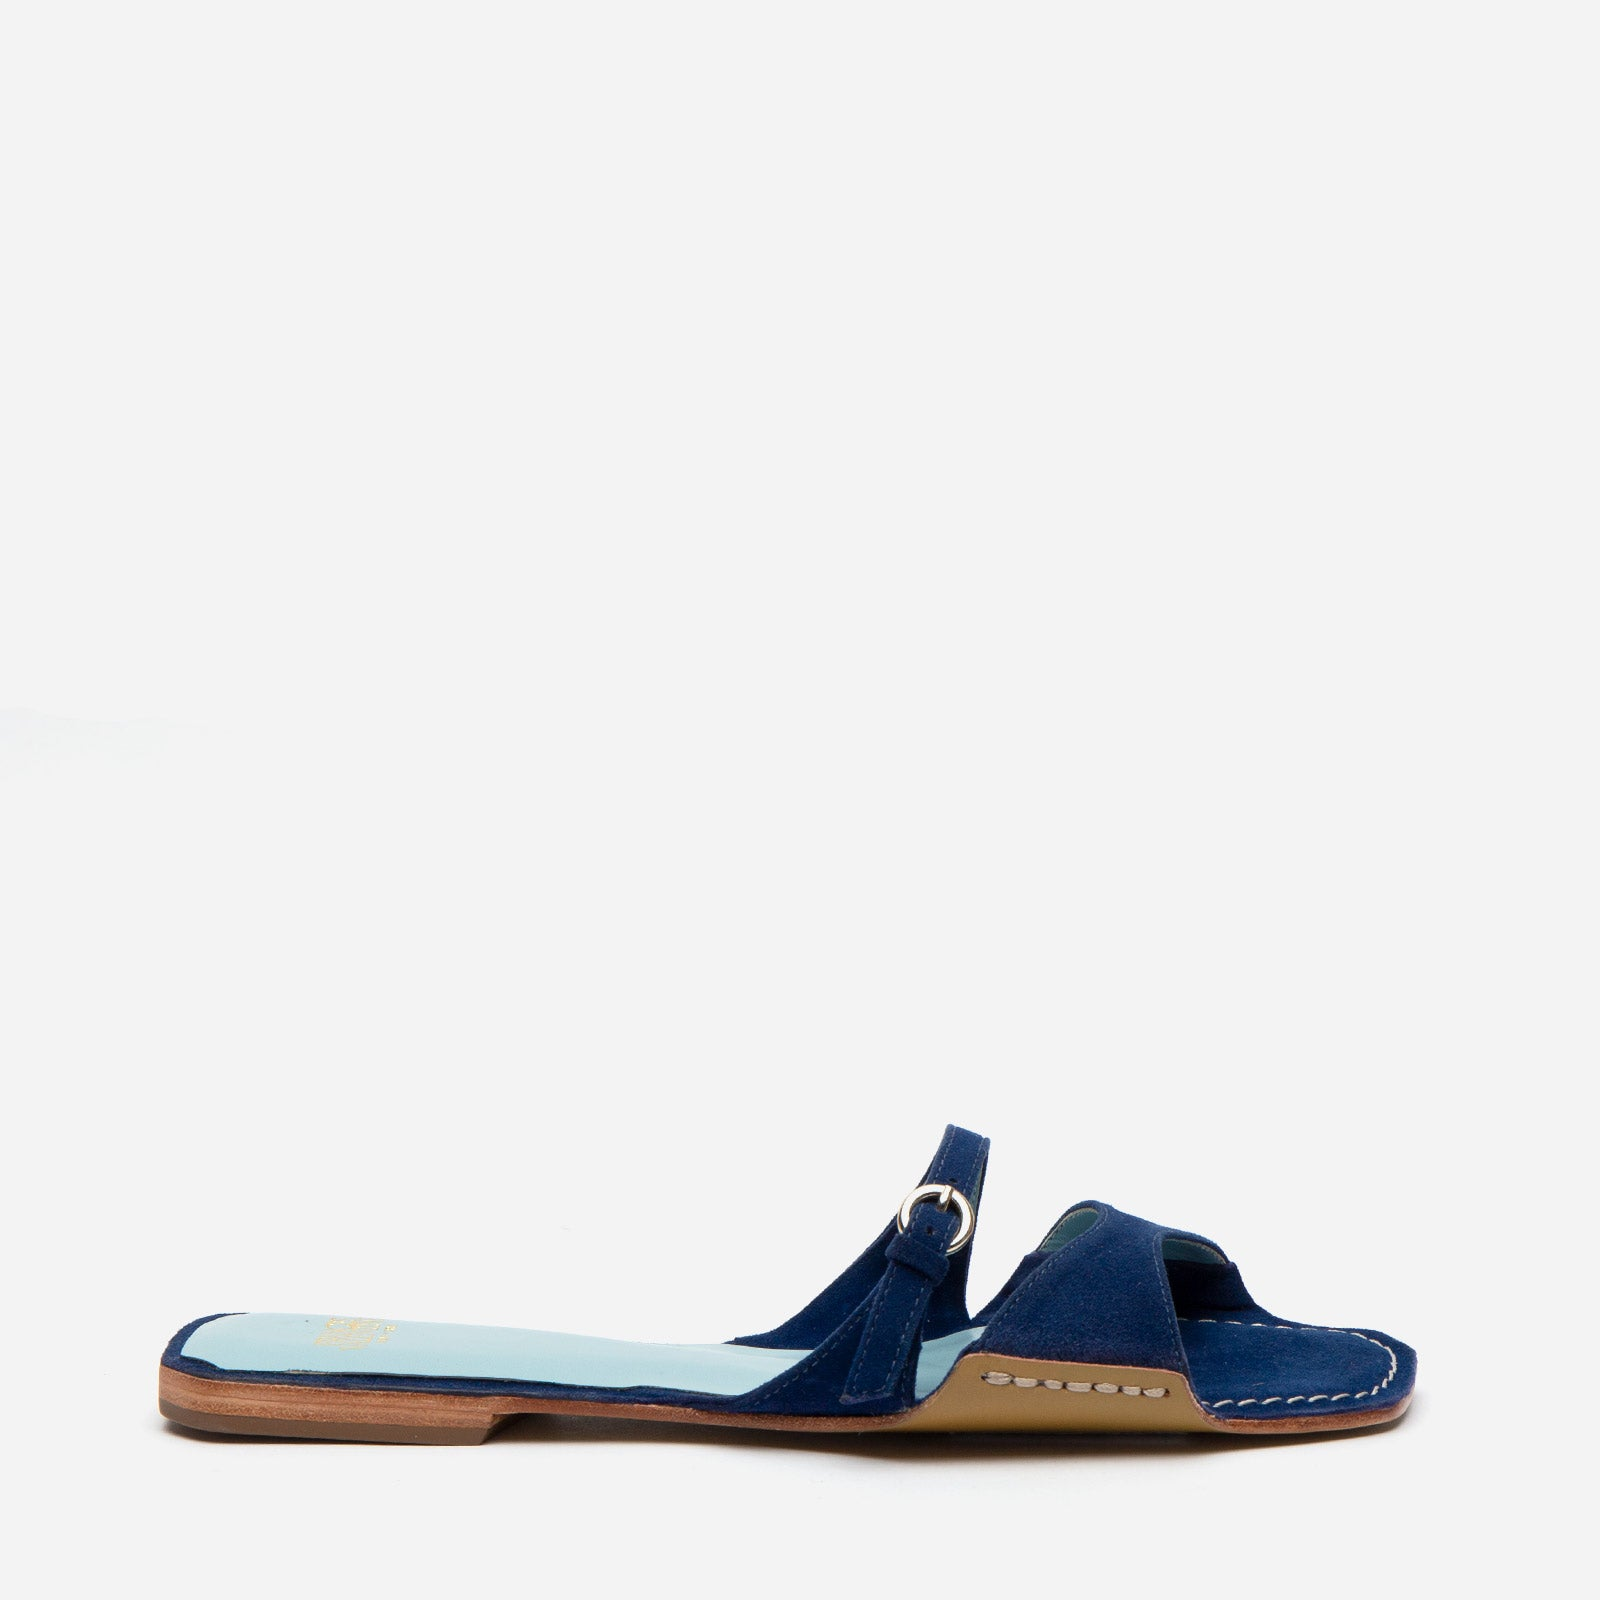 Square Toe Suede Slide Navy - Frances Valentine